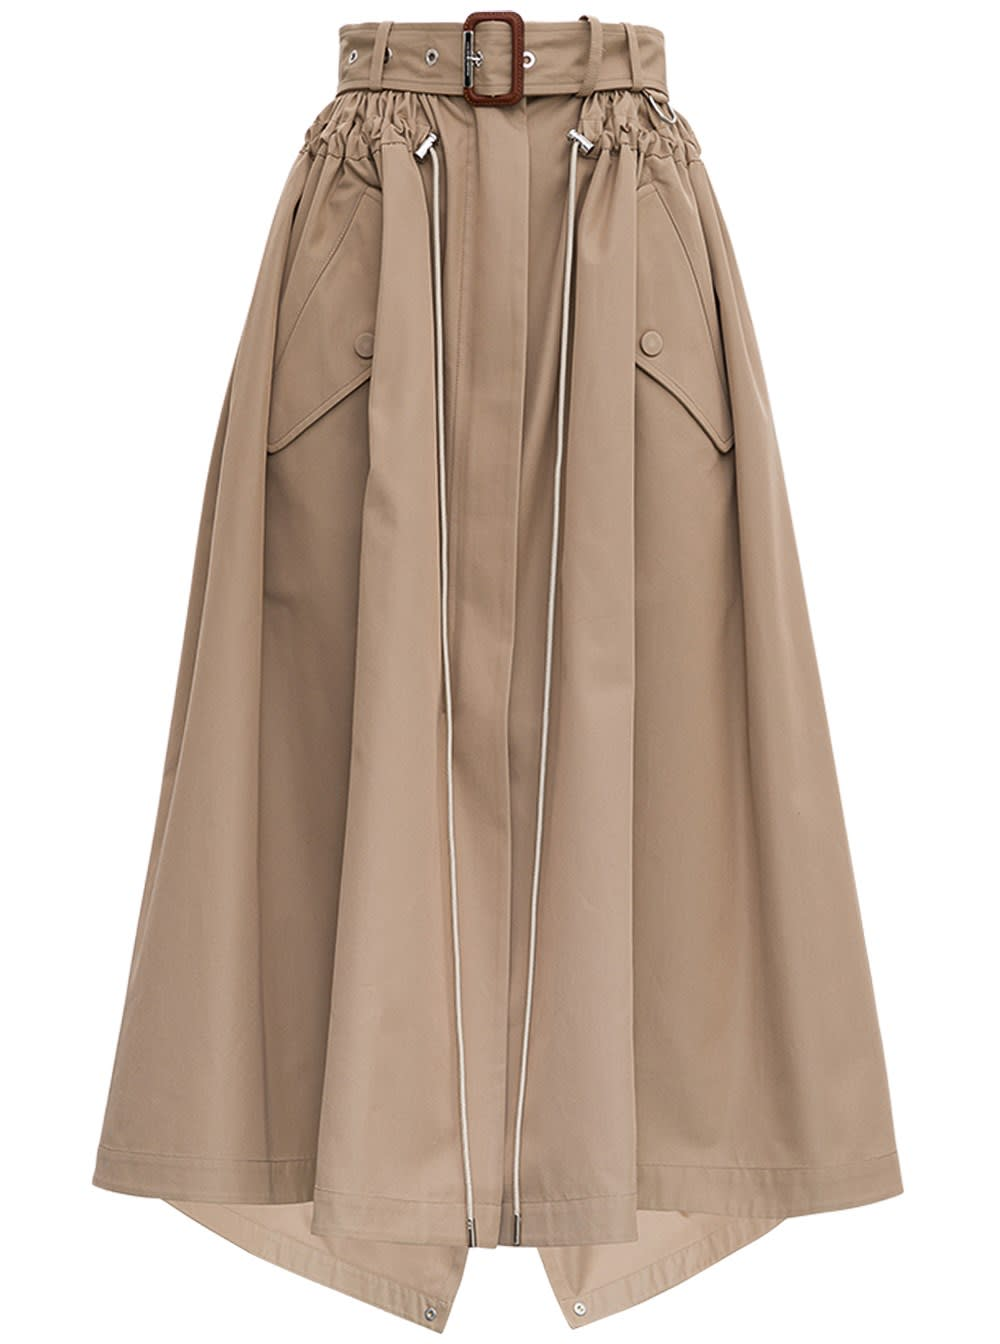 Alexander McQueen Beige Cotton Skirt With Belt